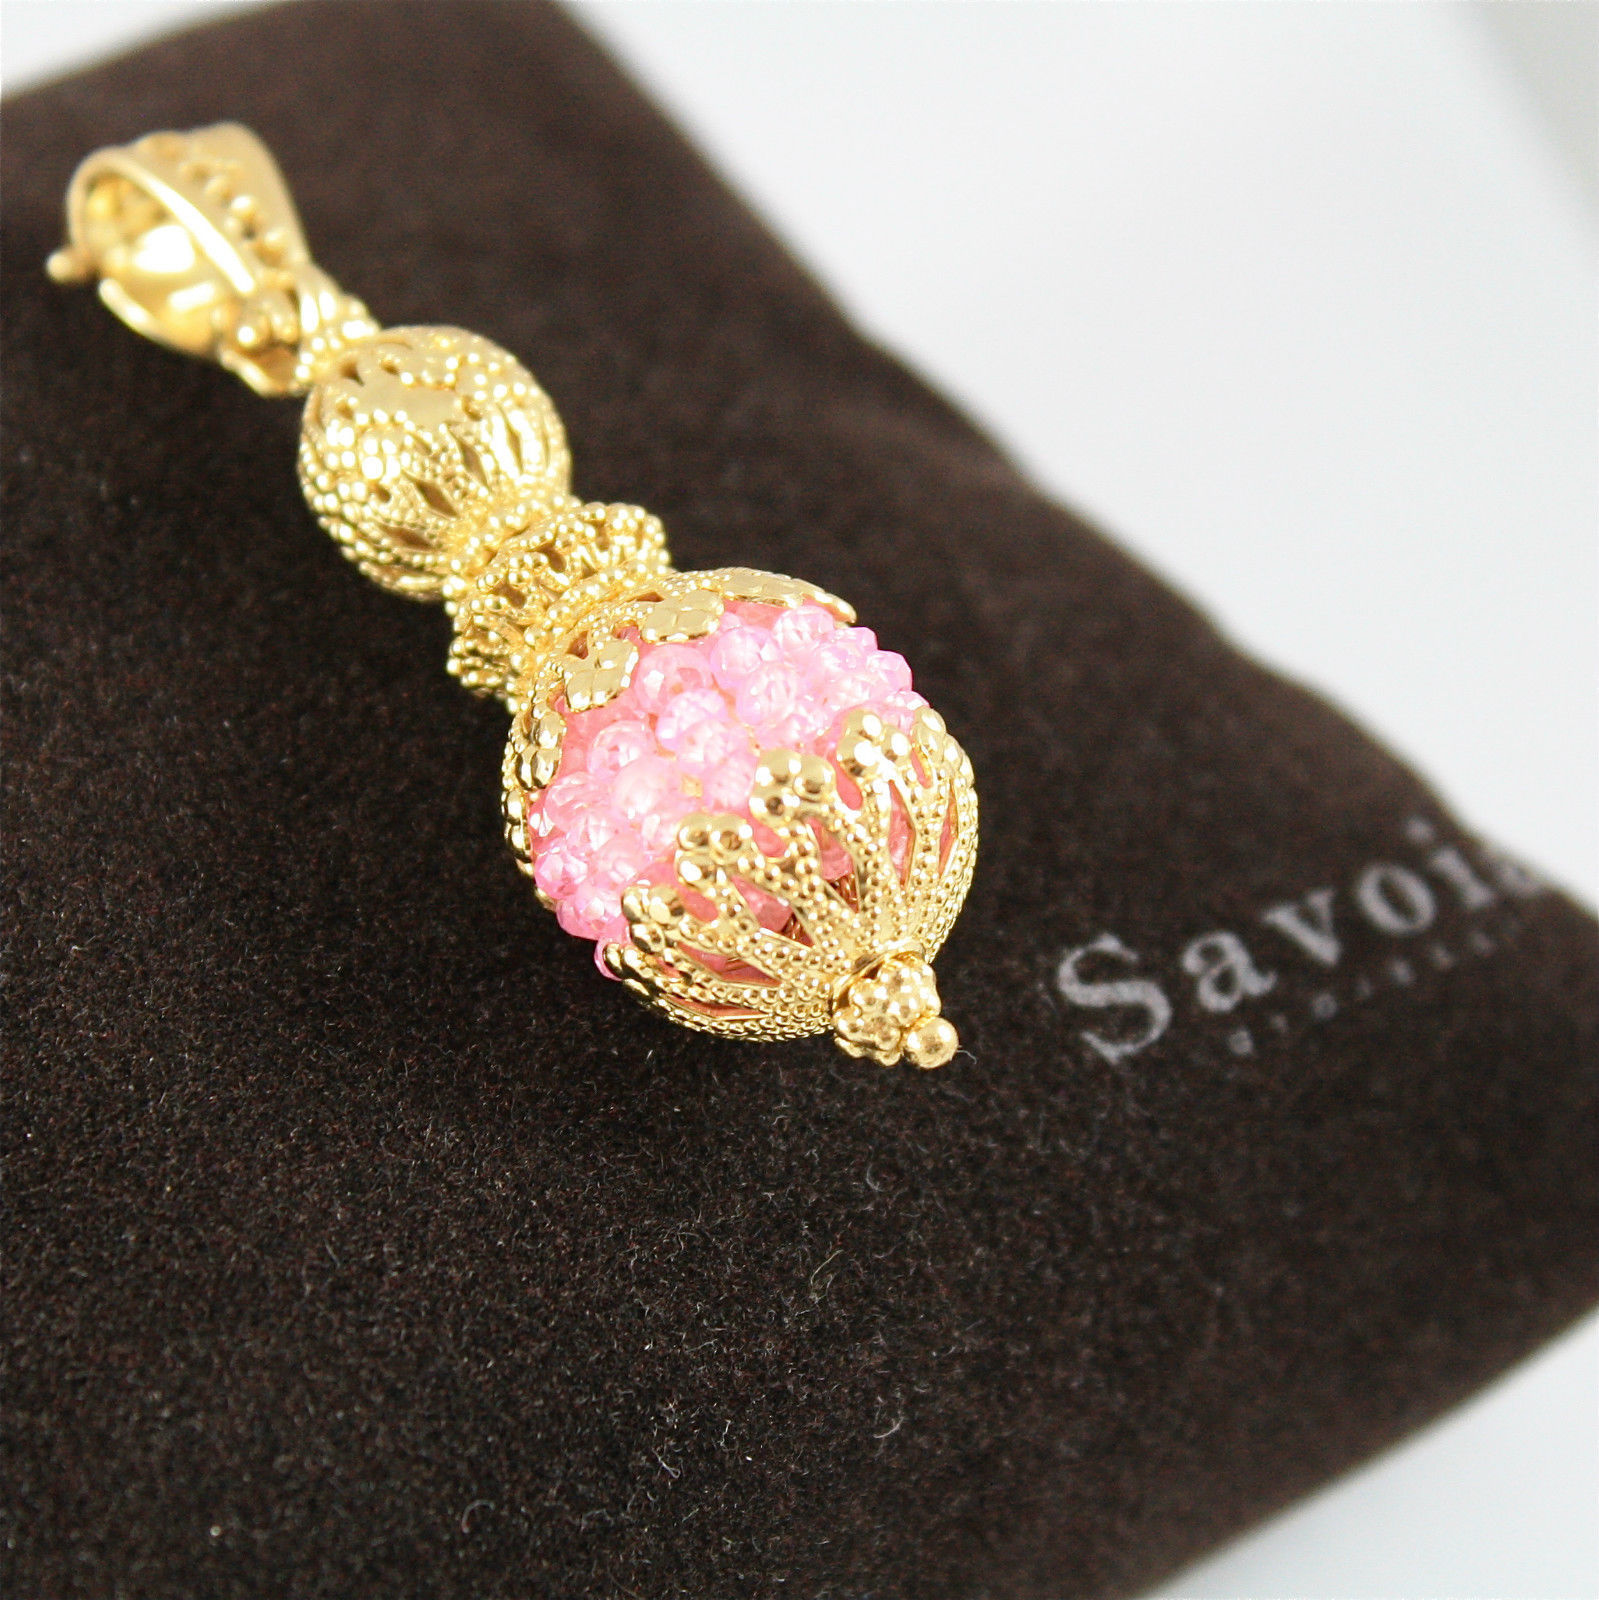 925 SILVER PENDANT PL. GOLD FACETED PINK SALOMITE MADE IN ITALY BY SAVOIA JEWEL